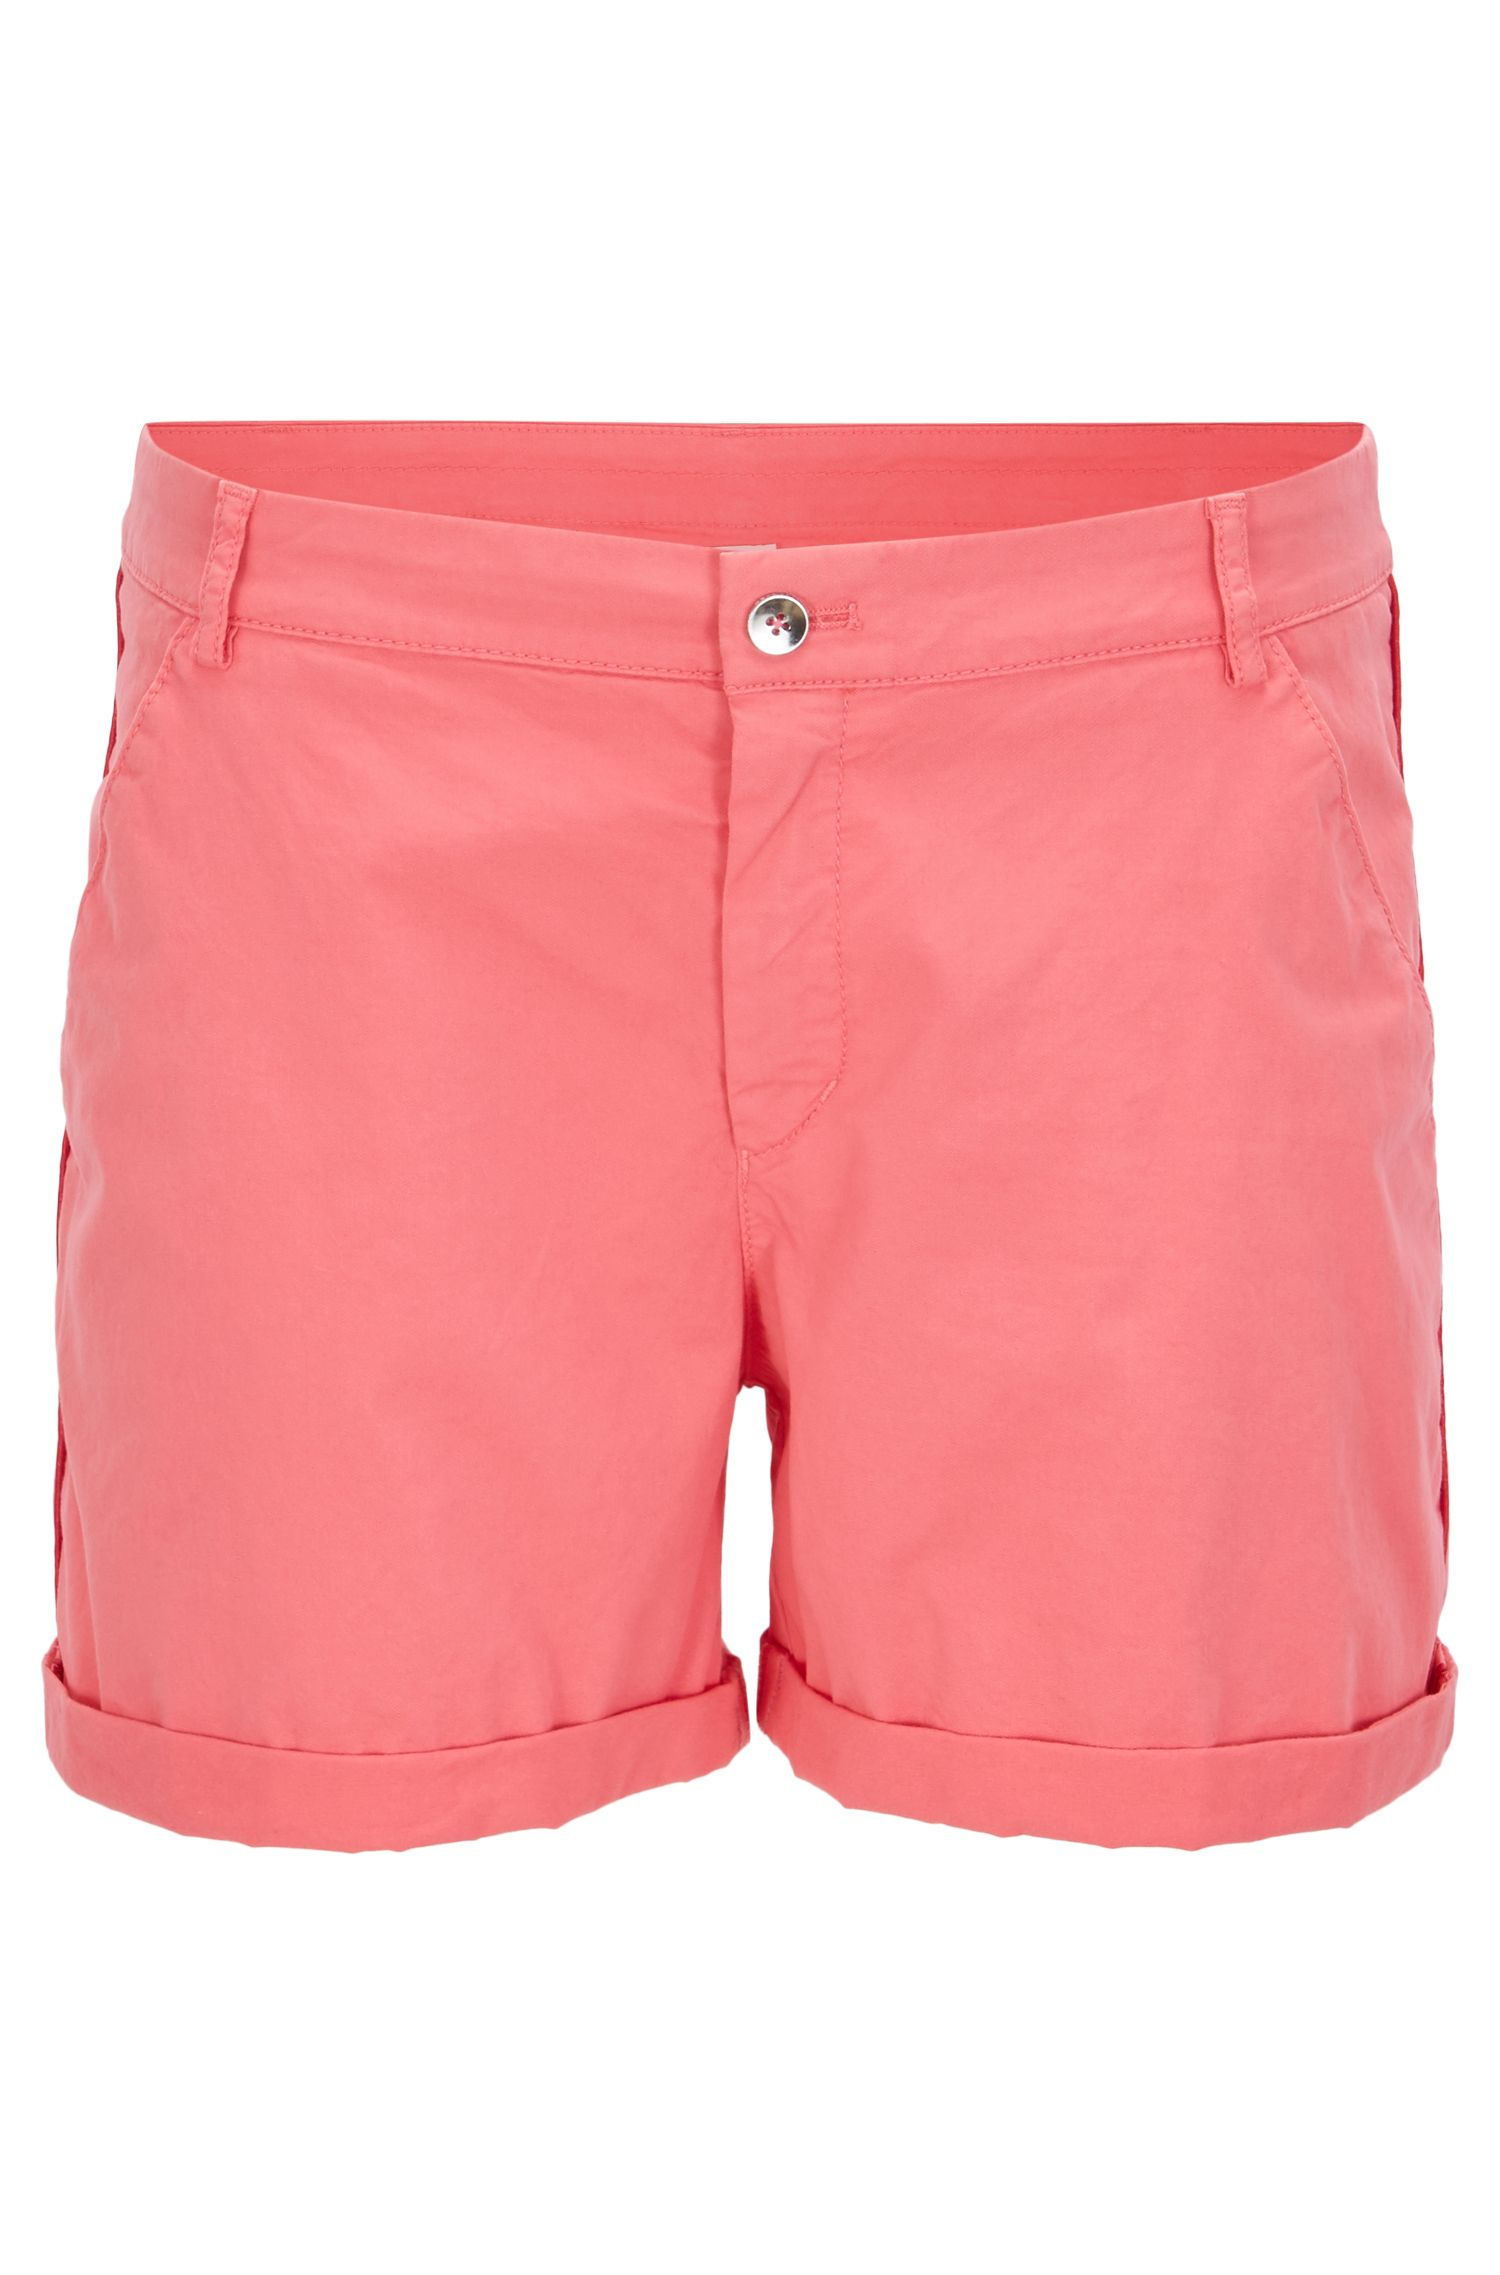 Short chino Relaxed Fit en coton stretch